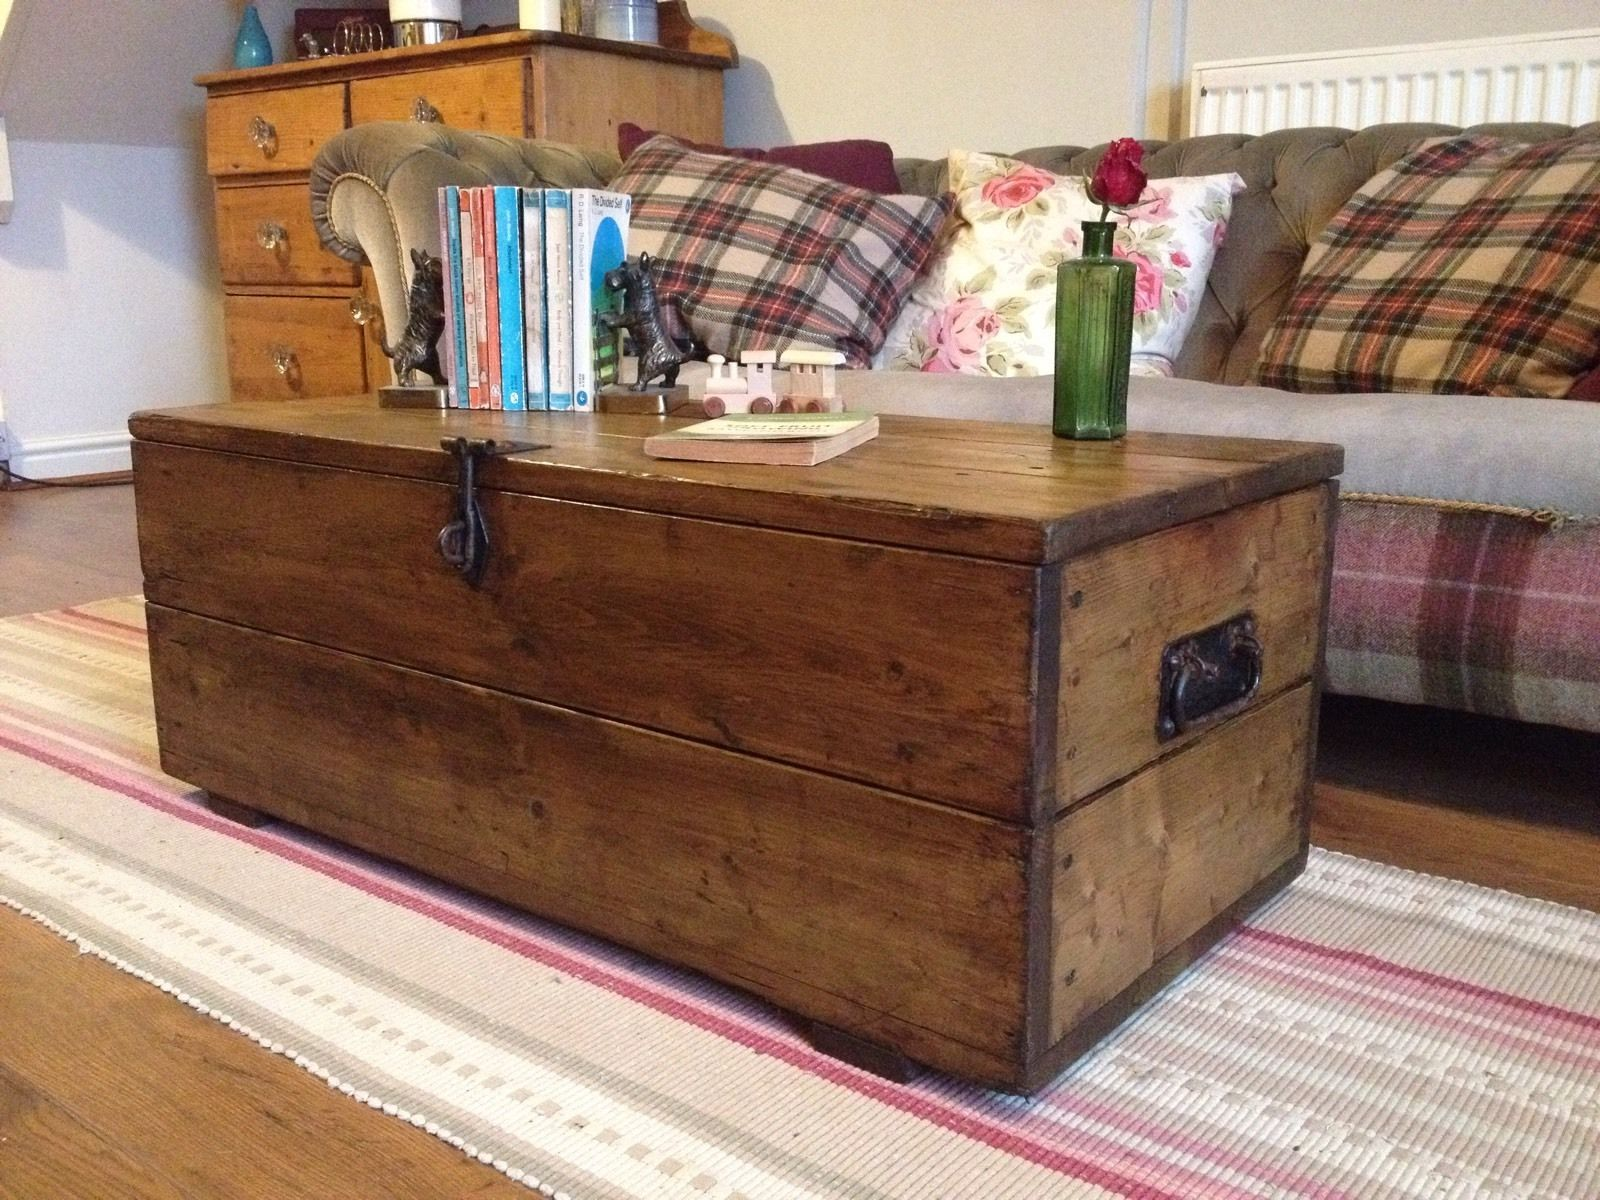 Old rustic pine box vintage wooden chest coffee table toy or